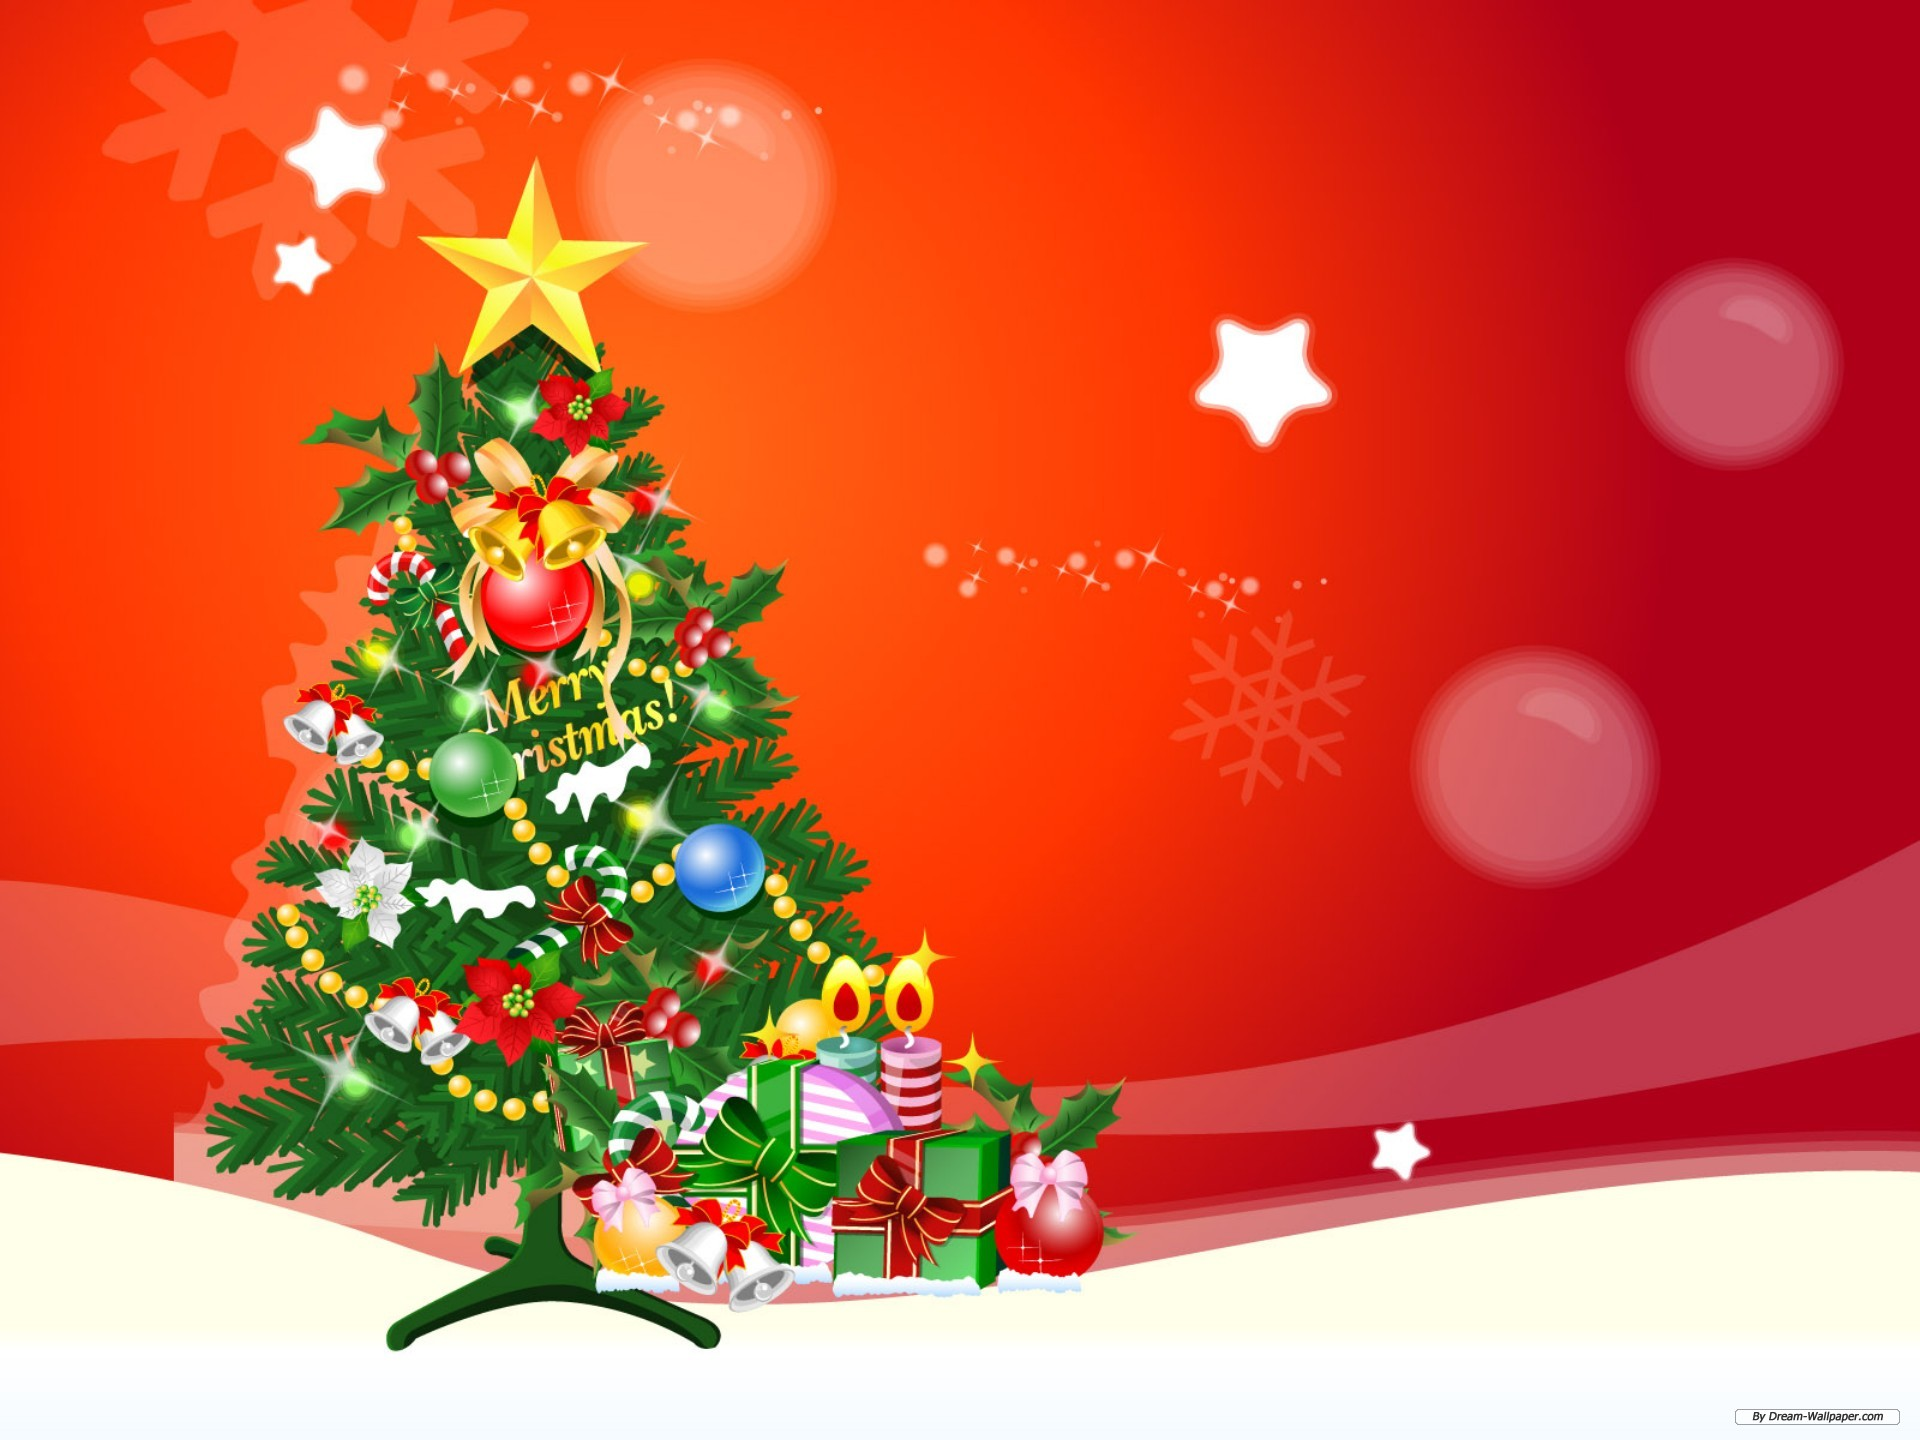 Free Download Holiday Wallpaper Christmas Theme 4 Wallpaper 1920x1440 Wallpaper 1920x1440 For Your Desktop Mobile Tablet Explore 67 Christmas Theme Backgrounds Christmas Wallpapers Christmas Desktop Free Theme Wallpaper